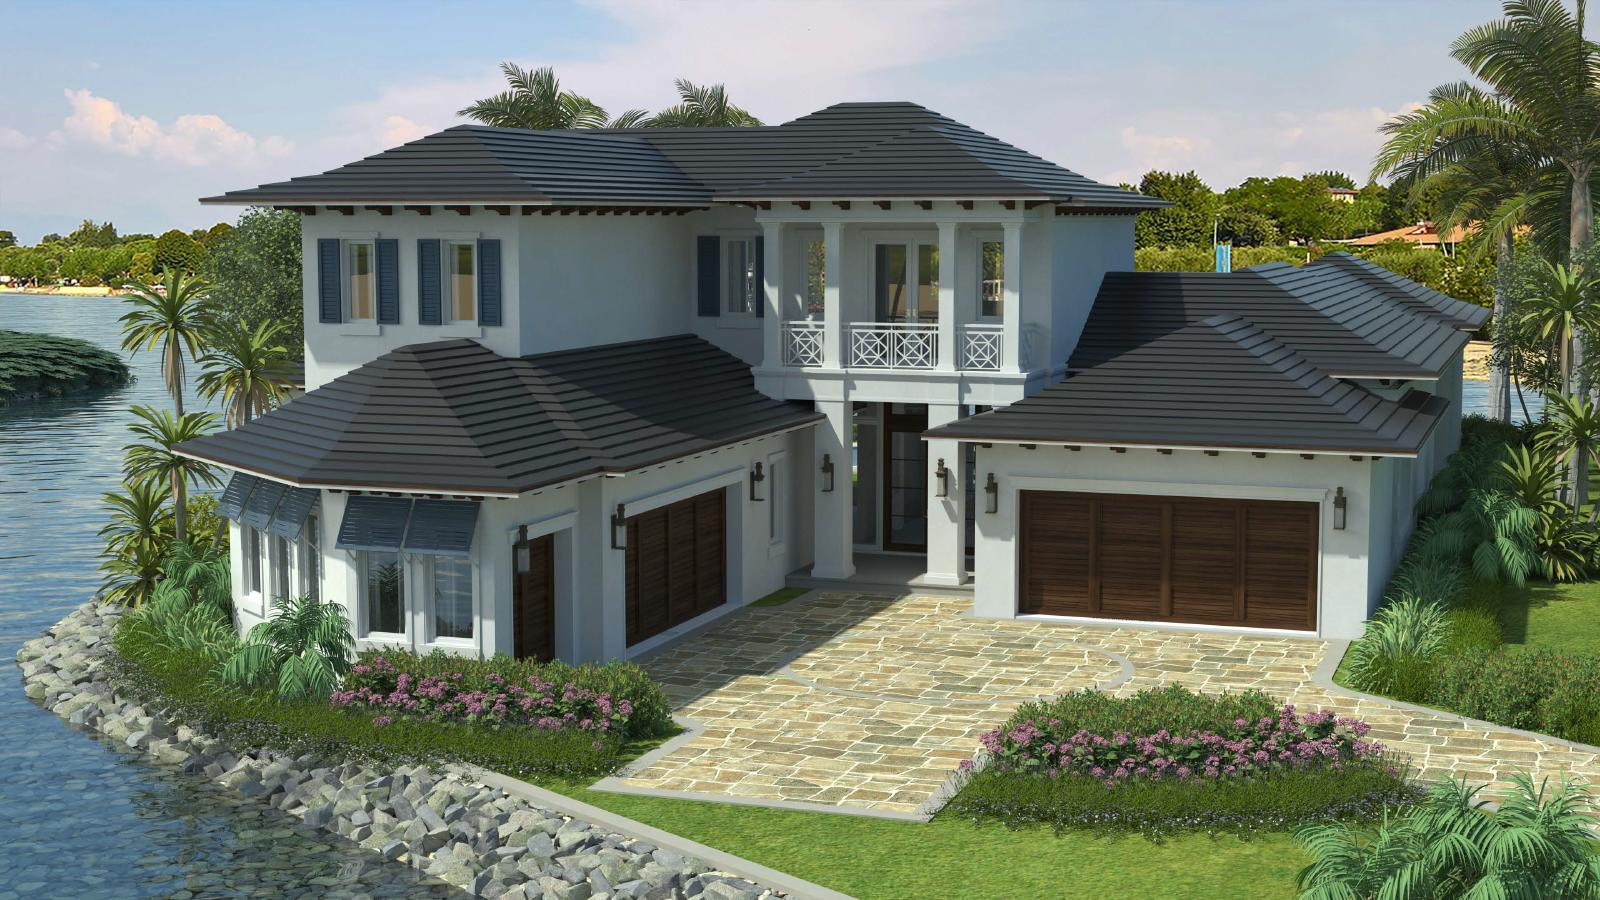 New Home for sale at 217 Island Drive in Jupiter